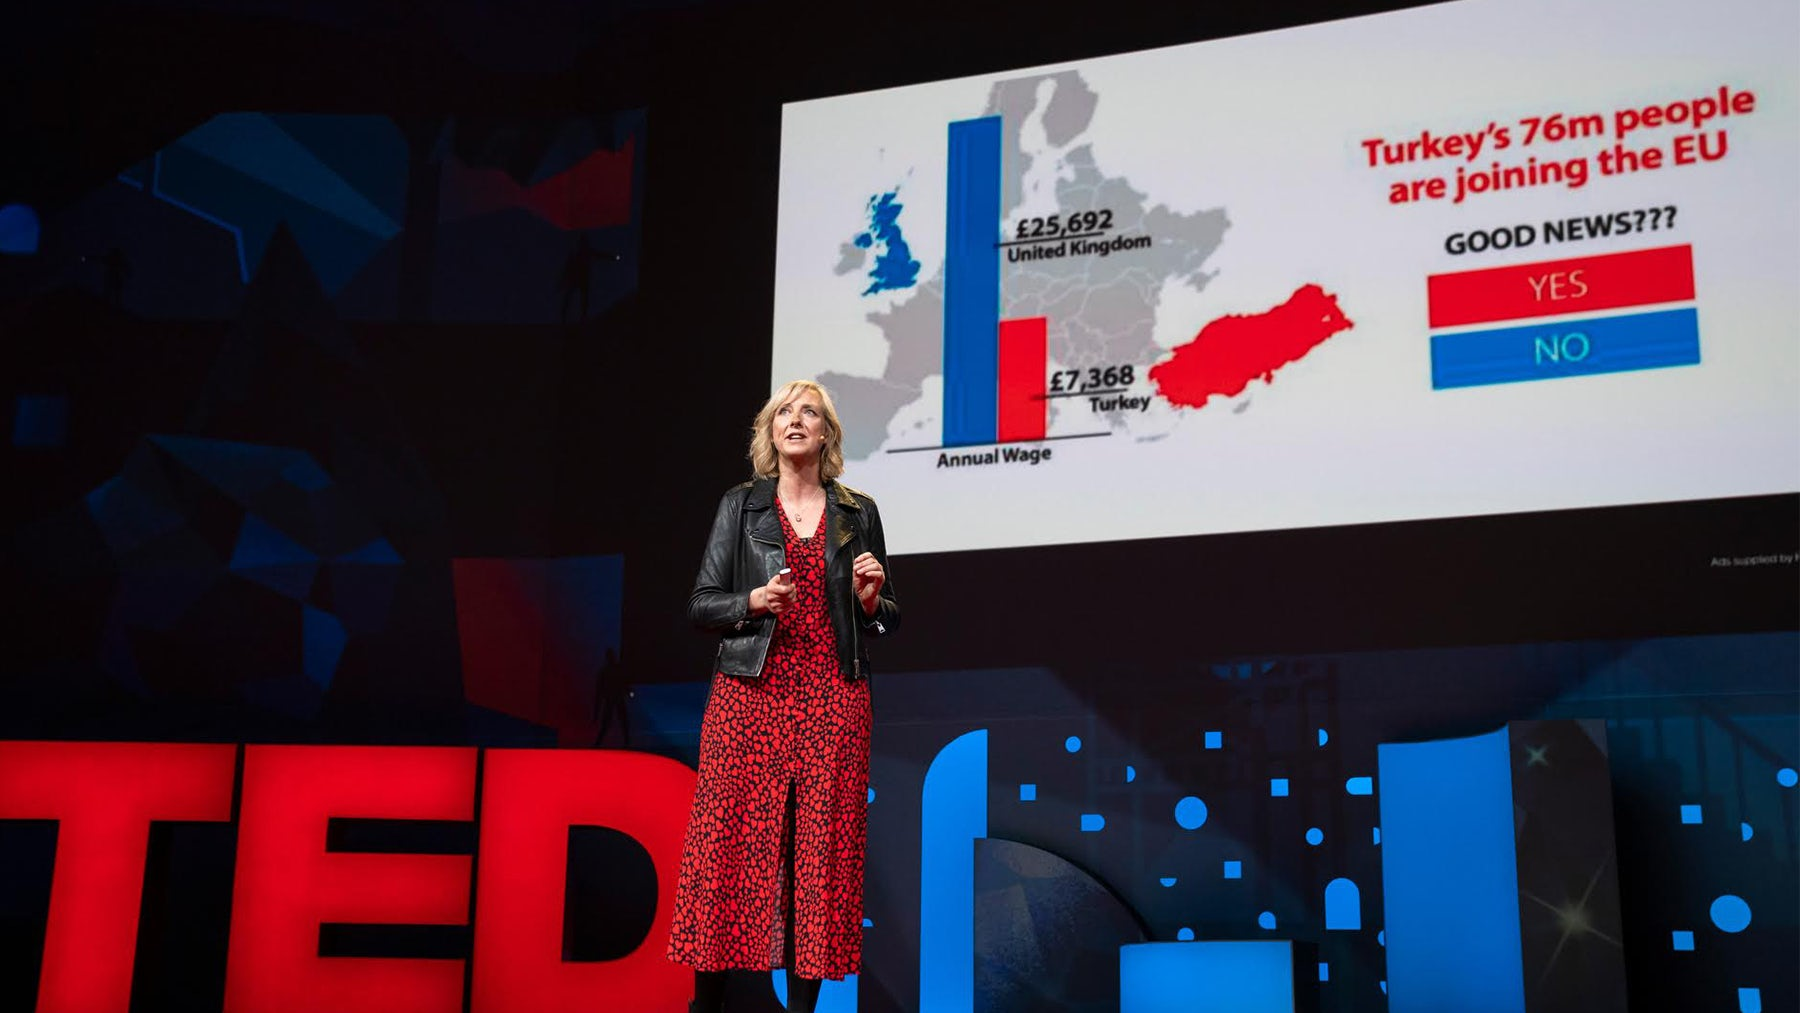 At TED 2019, Dystopia and Misinformation Mix with Joy and Inspiration